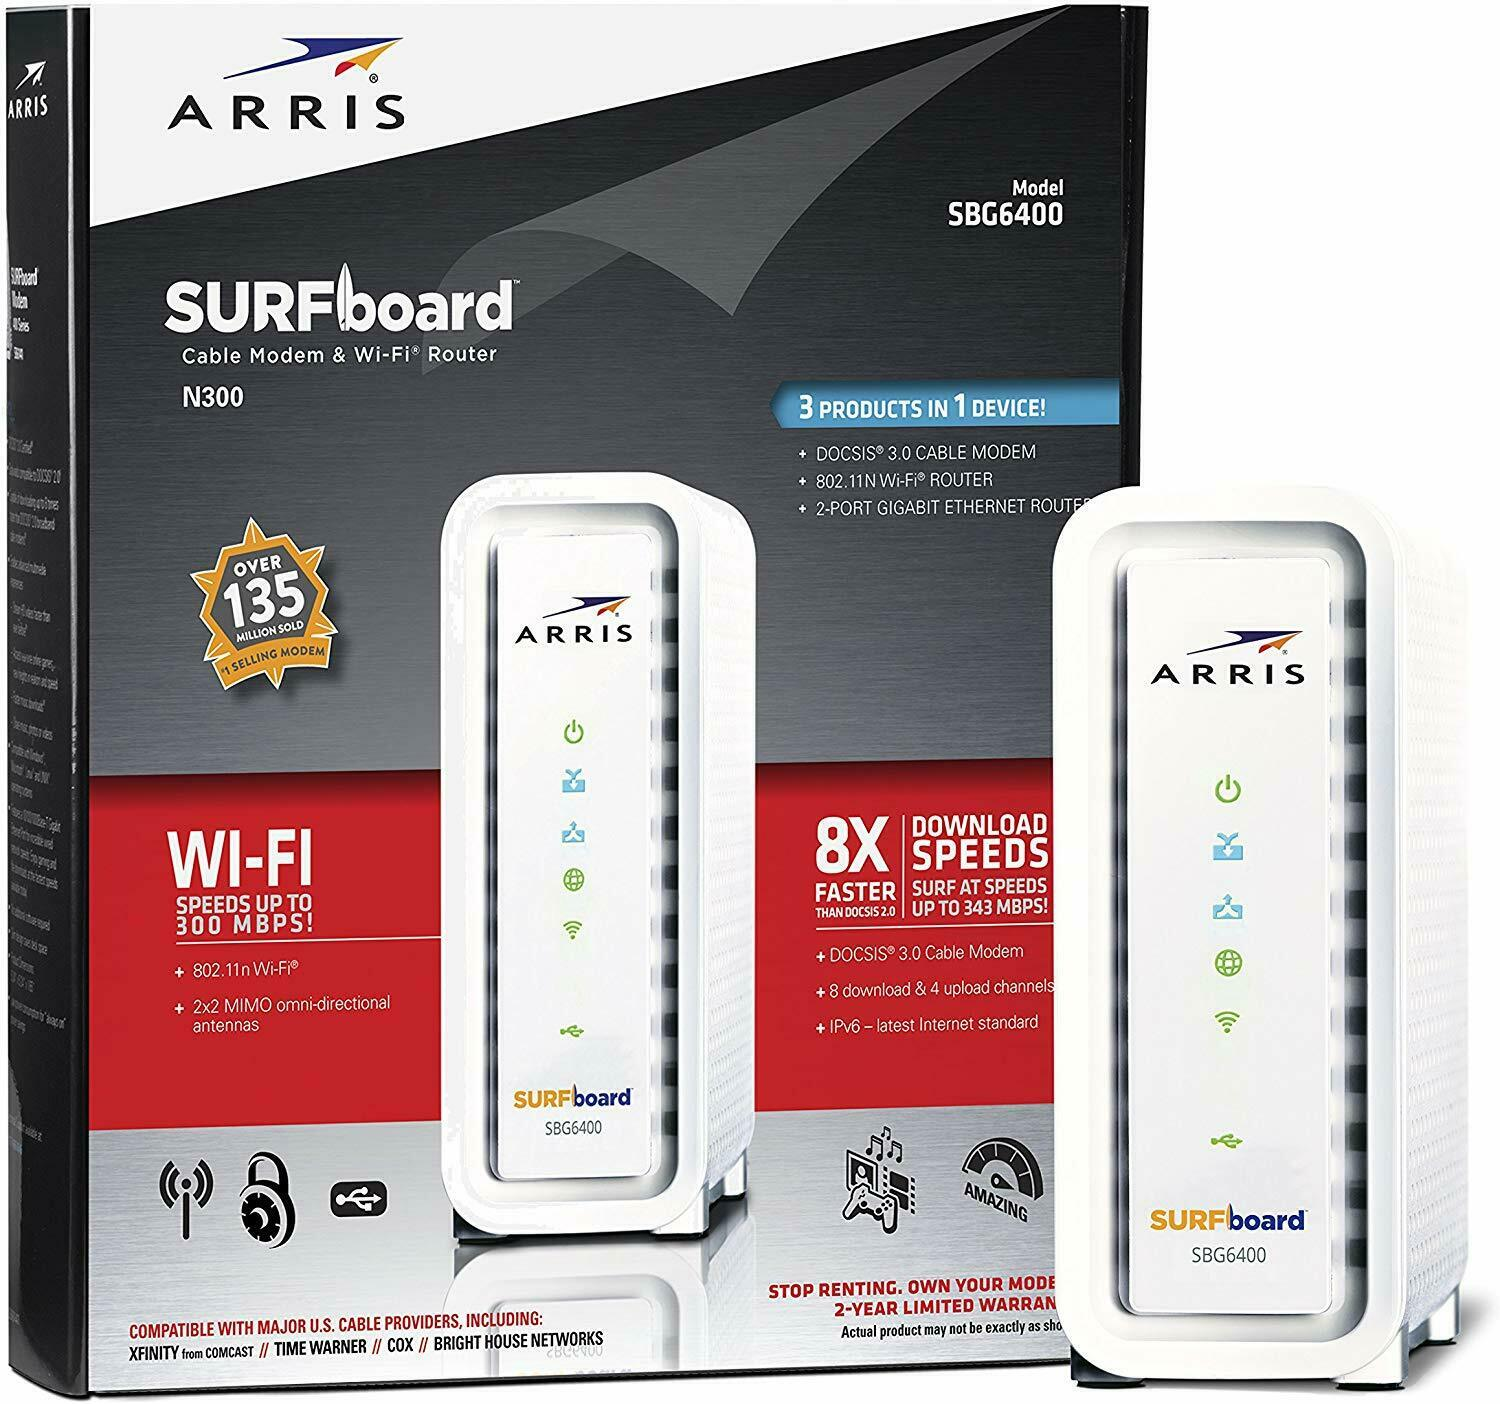 Arris SGB6400 Surfboard Cable Modem and WiFi Router